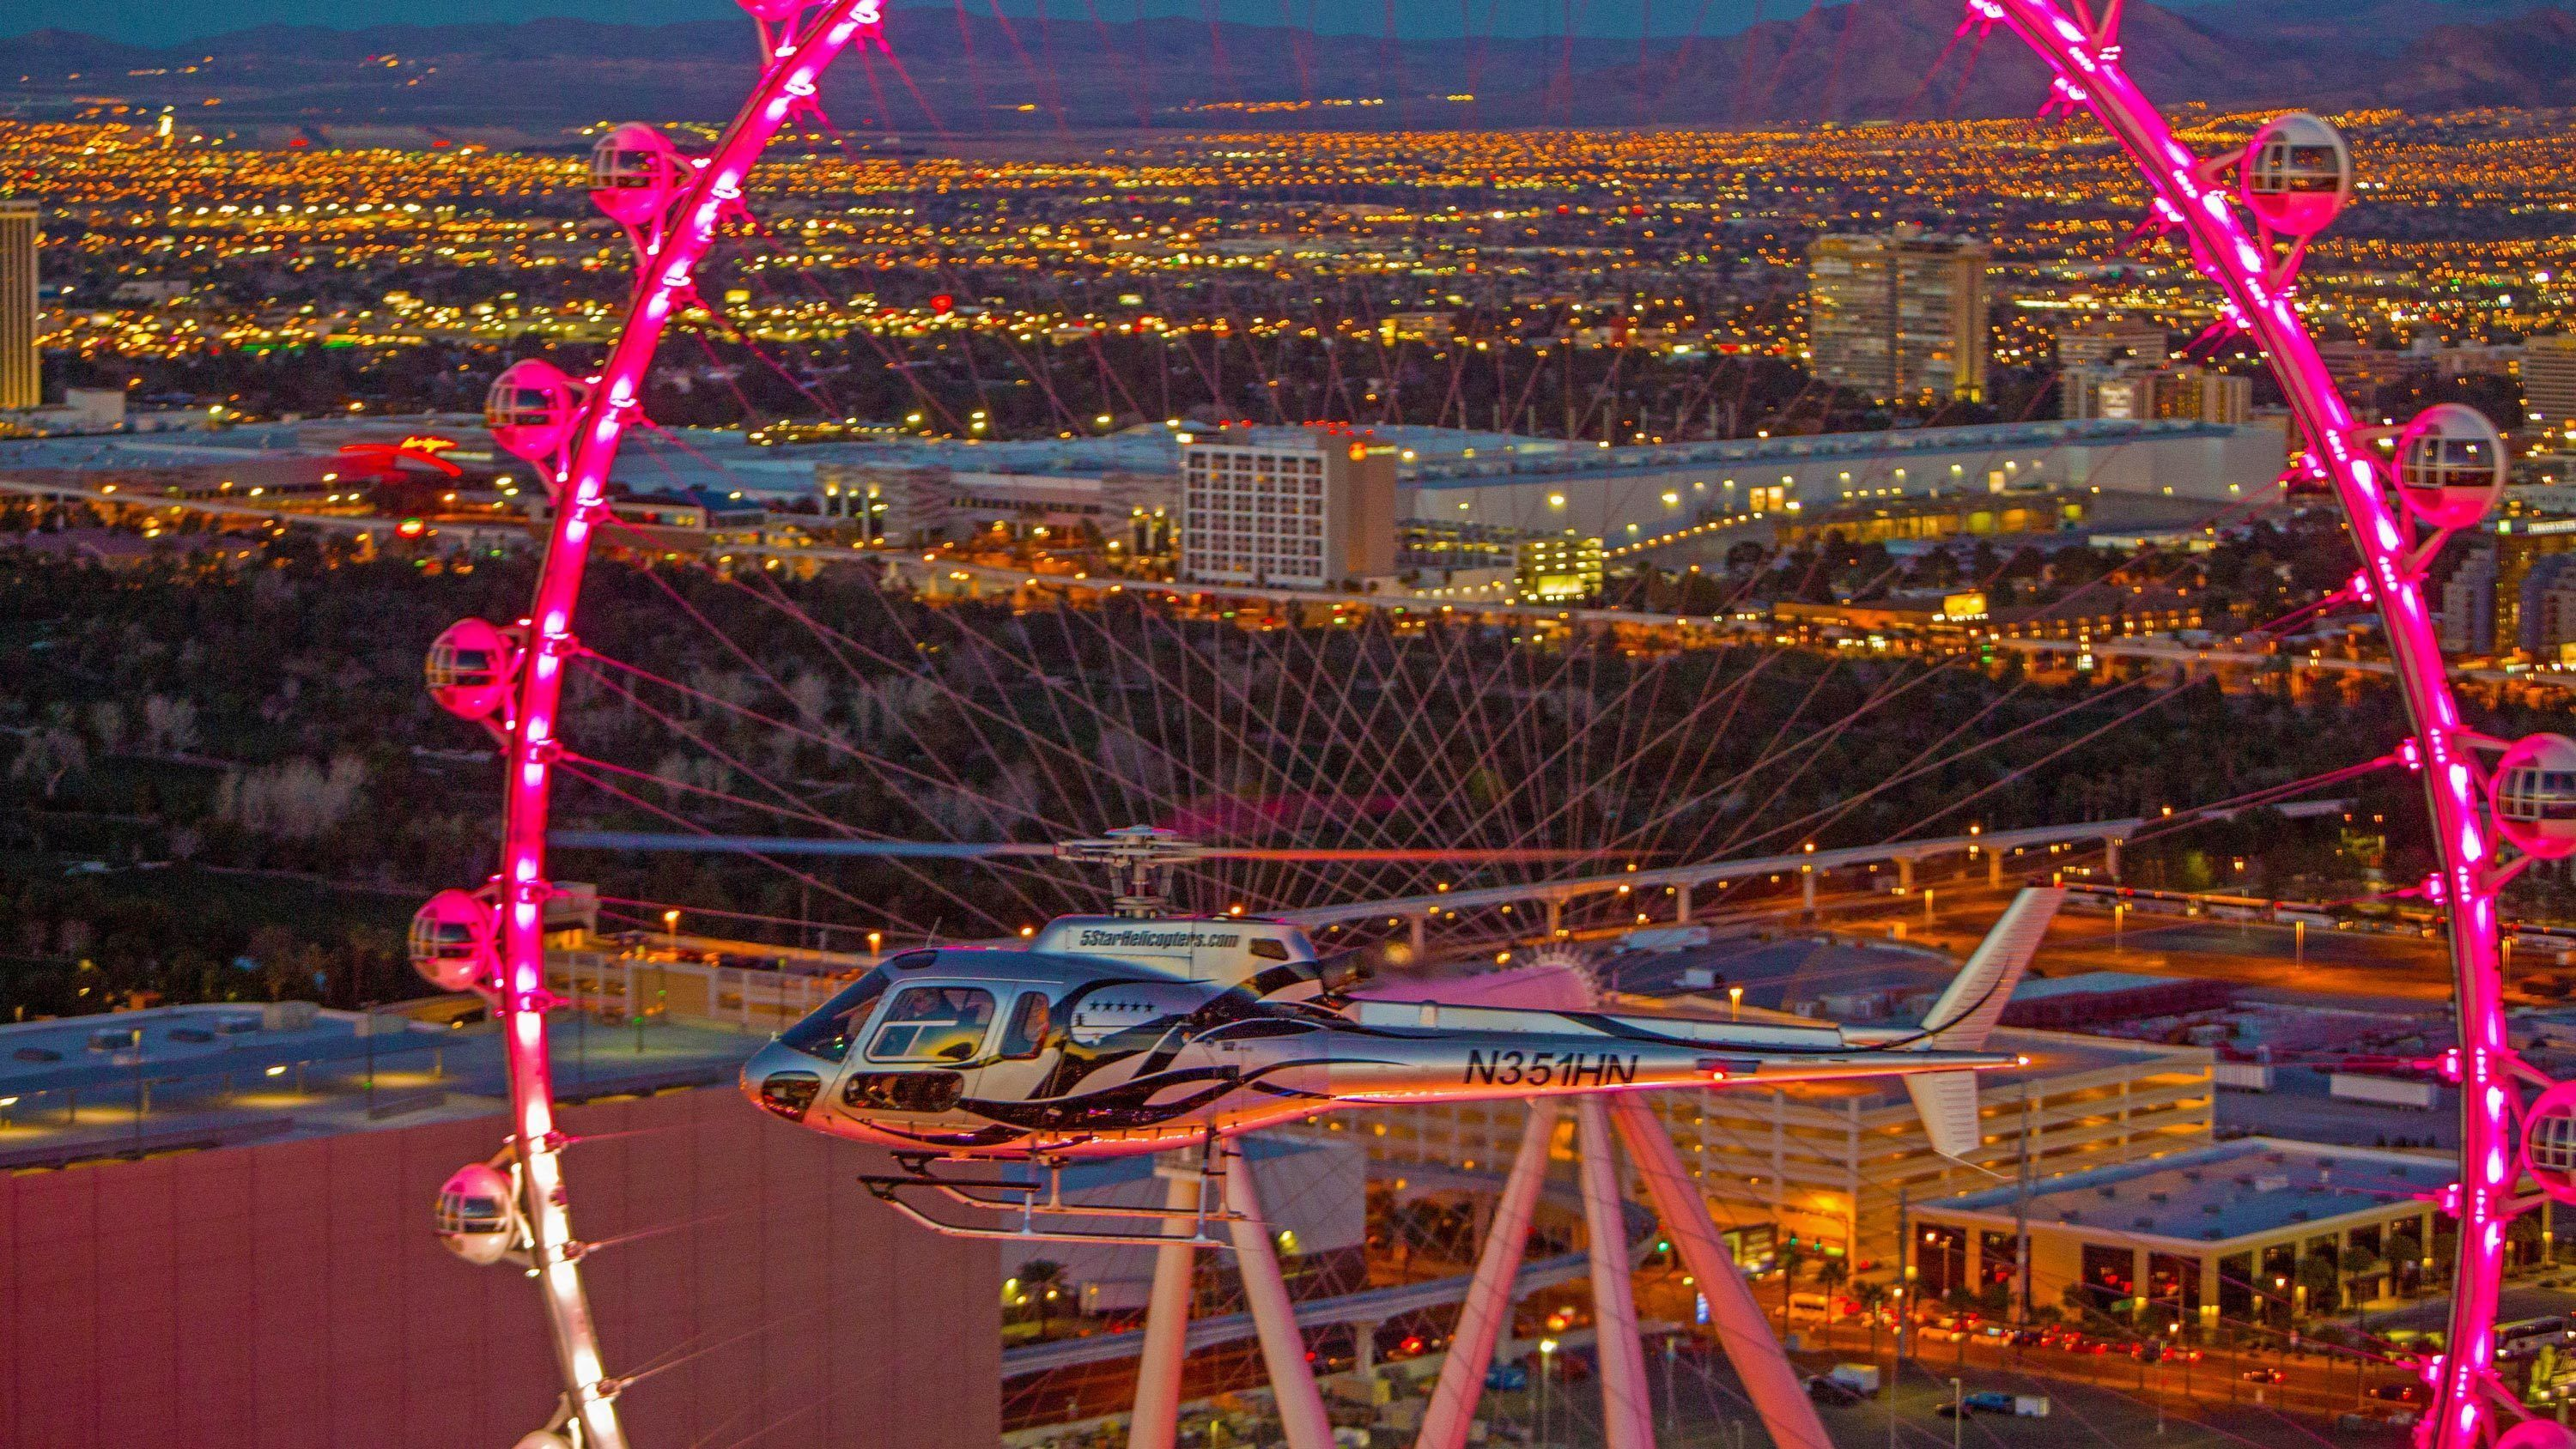 Helicopter near the High Roller ferris wheel at night in Las Vegas